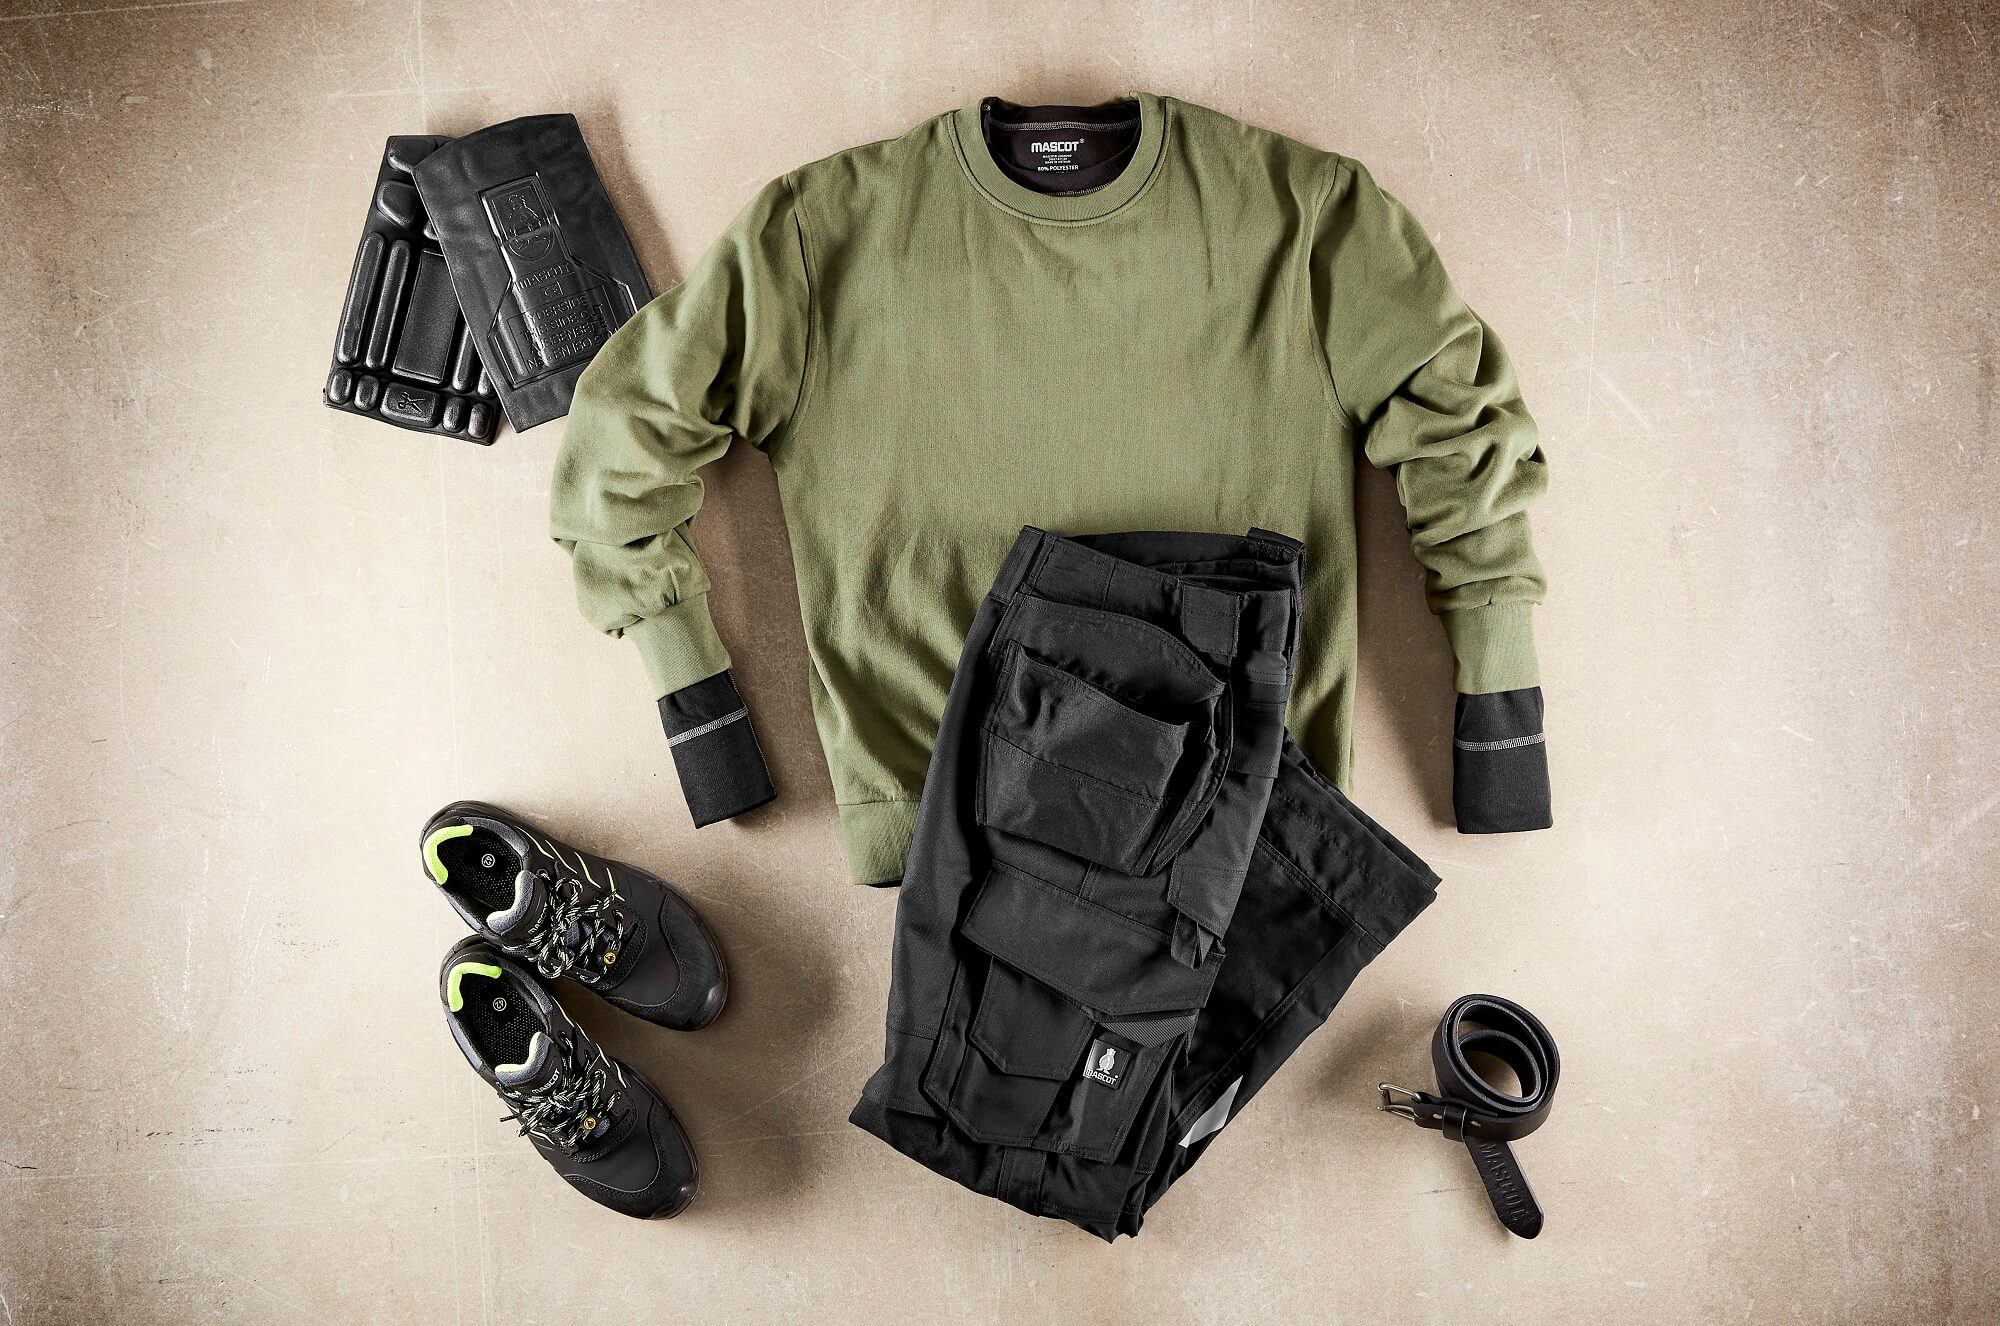 Sweatshirt, Work Pants, Kneepads & Safety Shoe - Olive green & Black